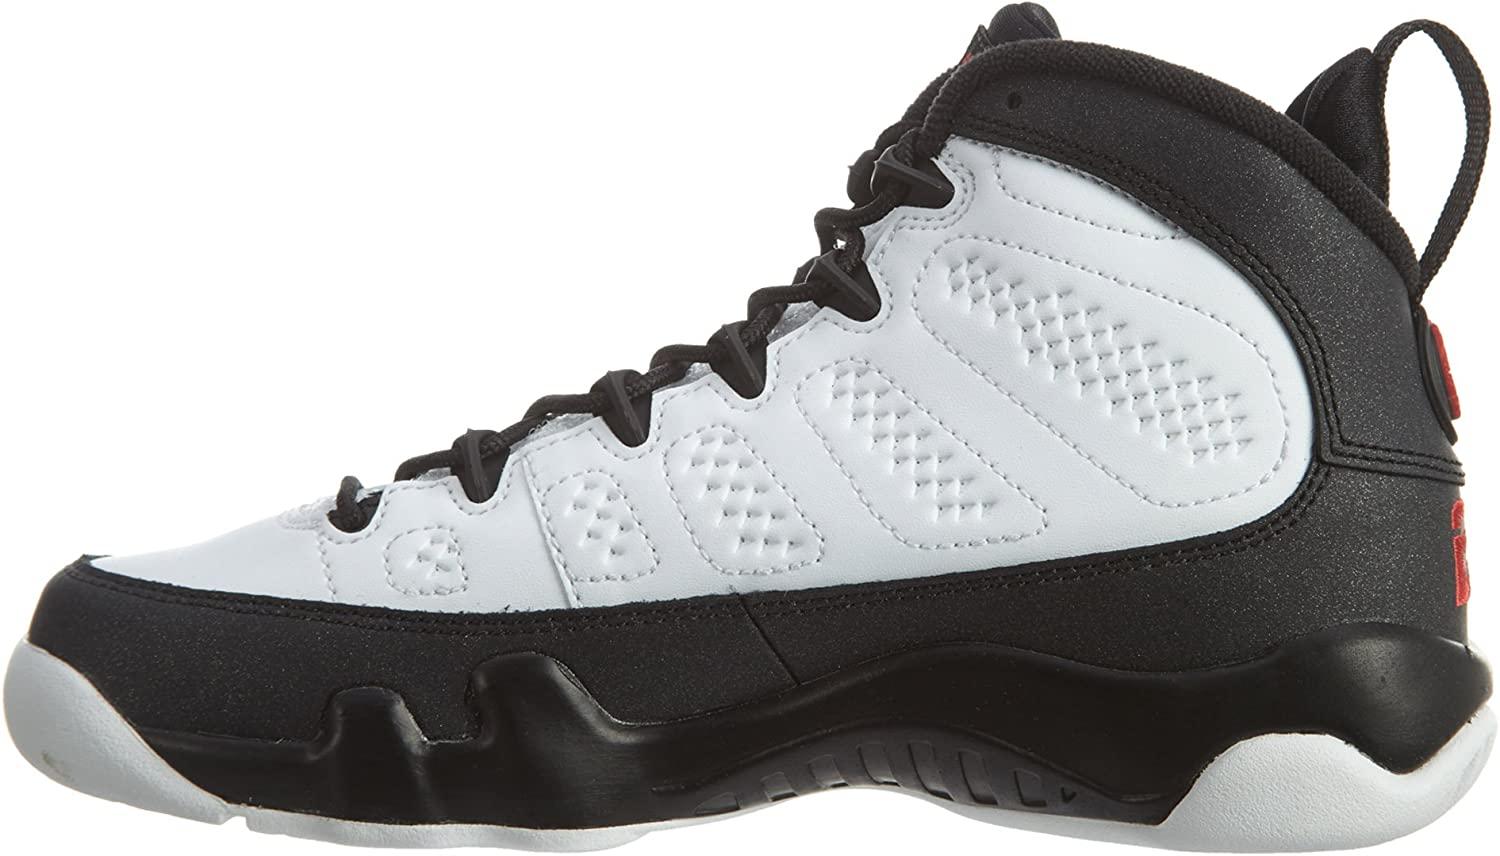 Nike Air Jordan 9 Retro BG Black & White Space Jam